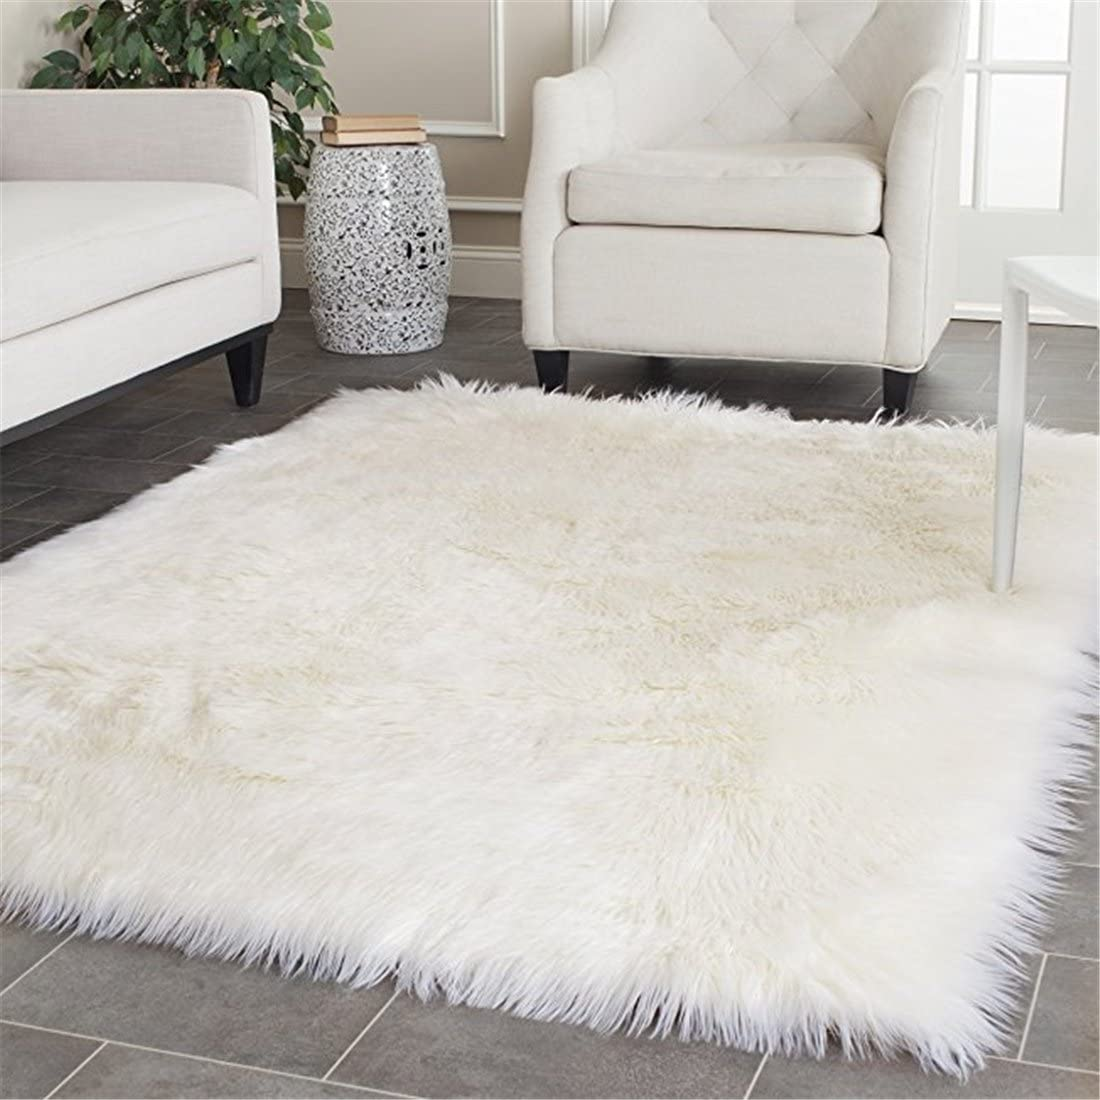 Faux Silky Deluxe Sheepskin Area Shag Rug Children Play Carpet